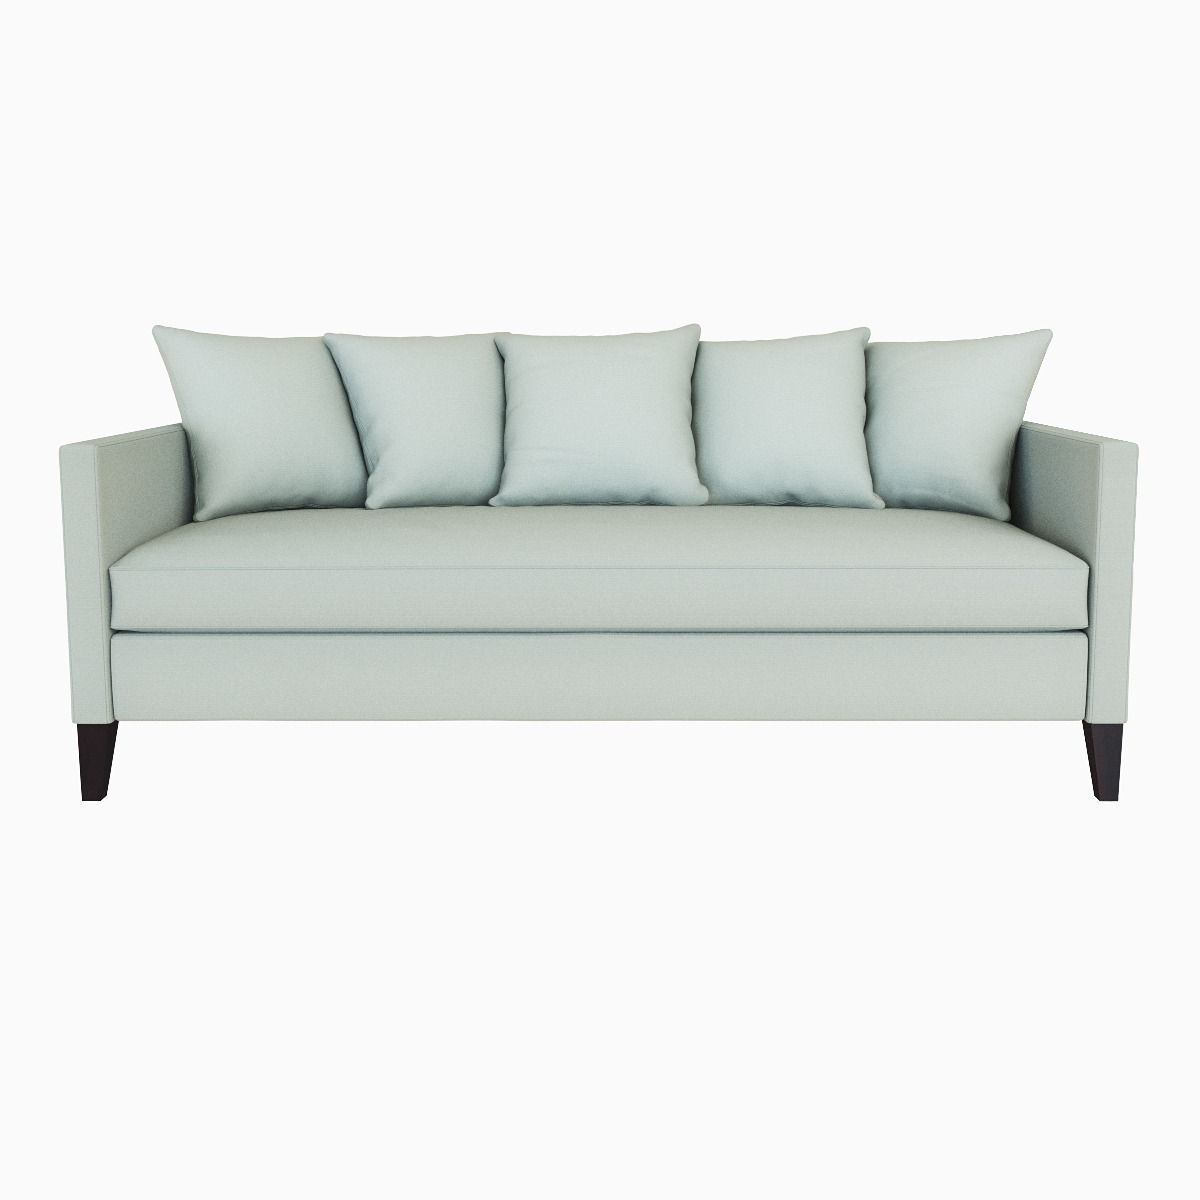 Down filled sofas slipcovered upholstered sofas loveseats for Best west elm sofa